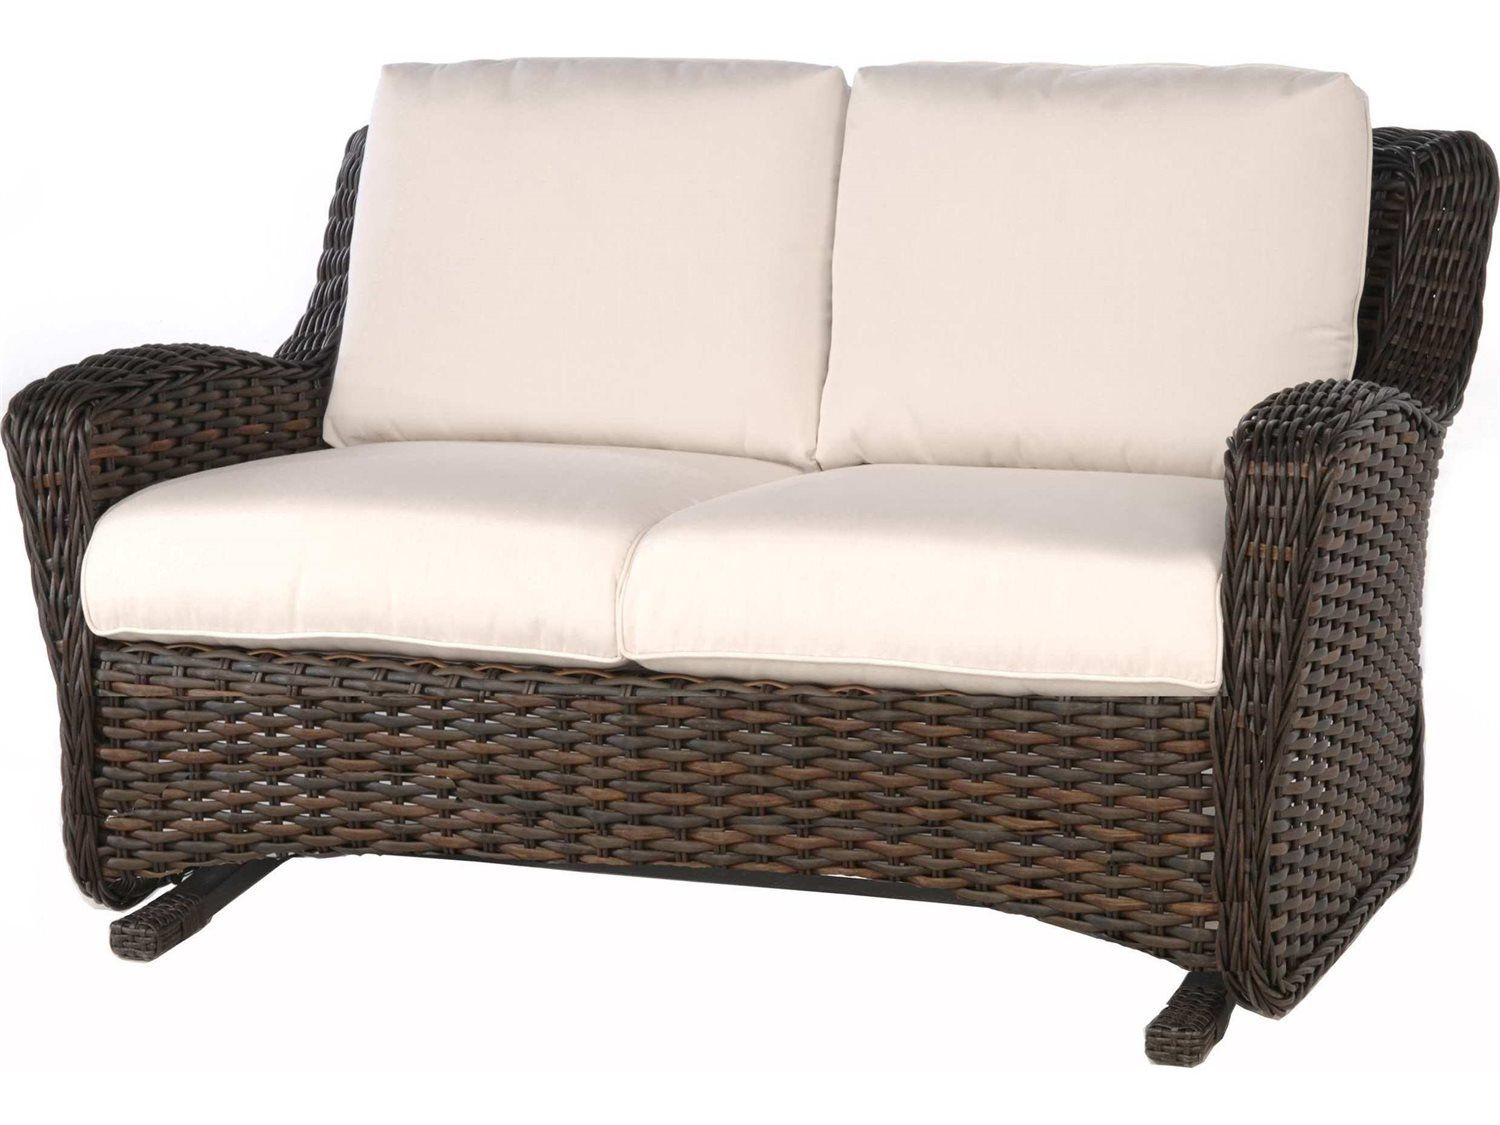 Homecrest Holly Hill Cushion Aluminum Arm Glider Sofa Intended For Outdoor Loveseat Gliders With Cushion (View 18 of 25)